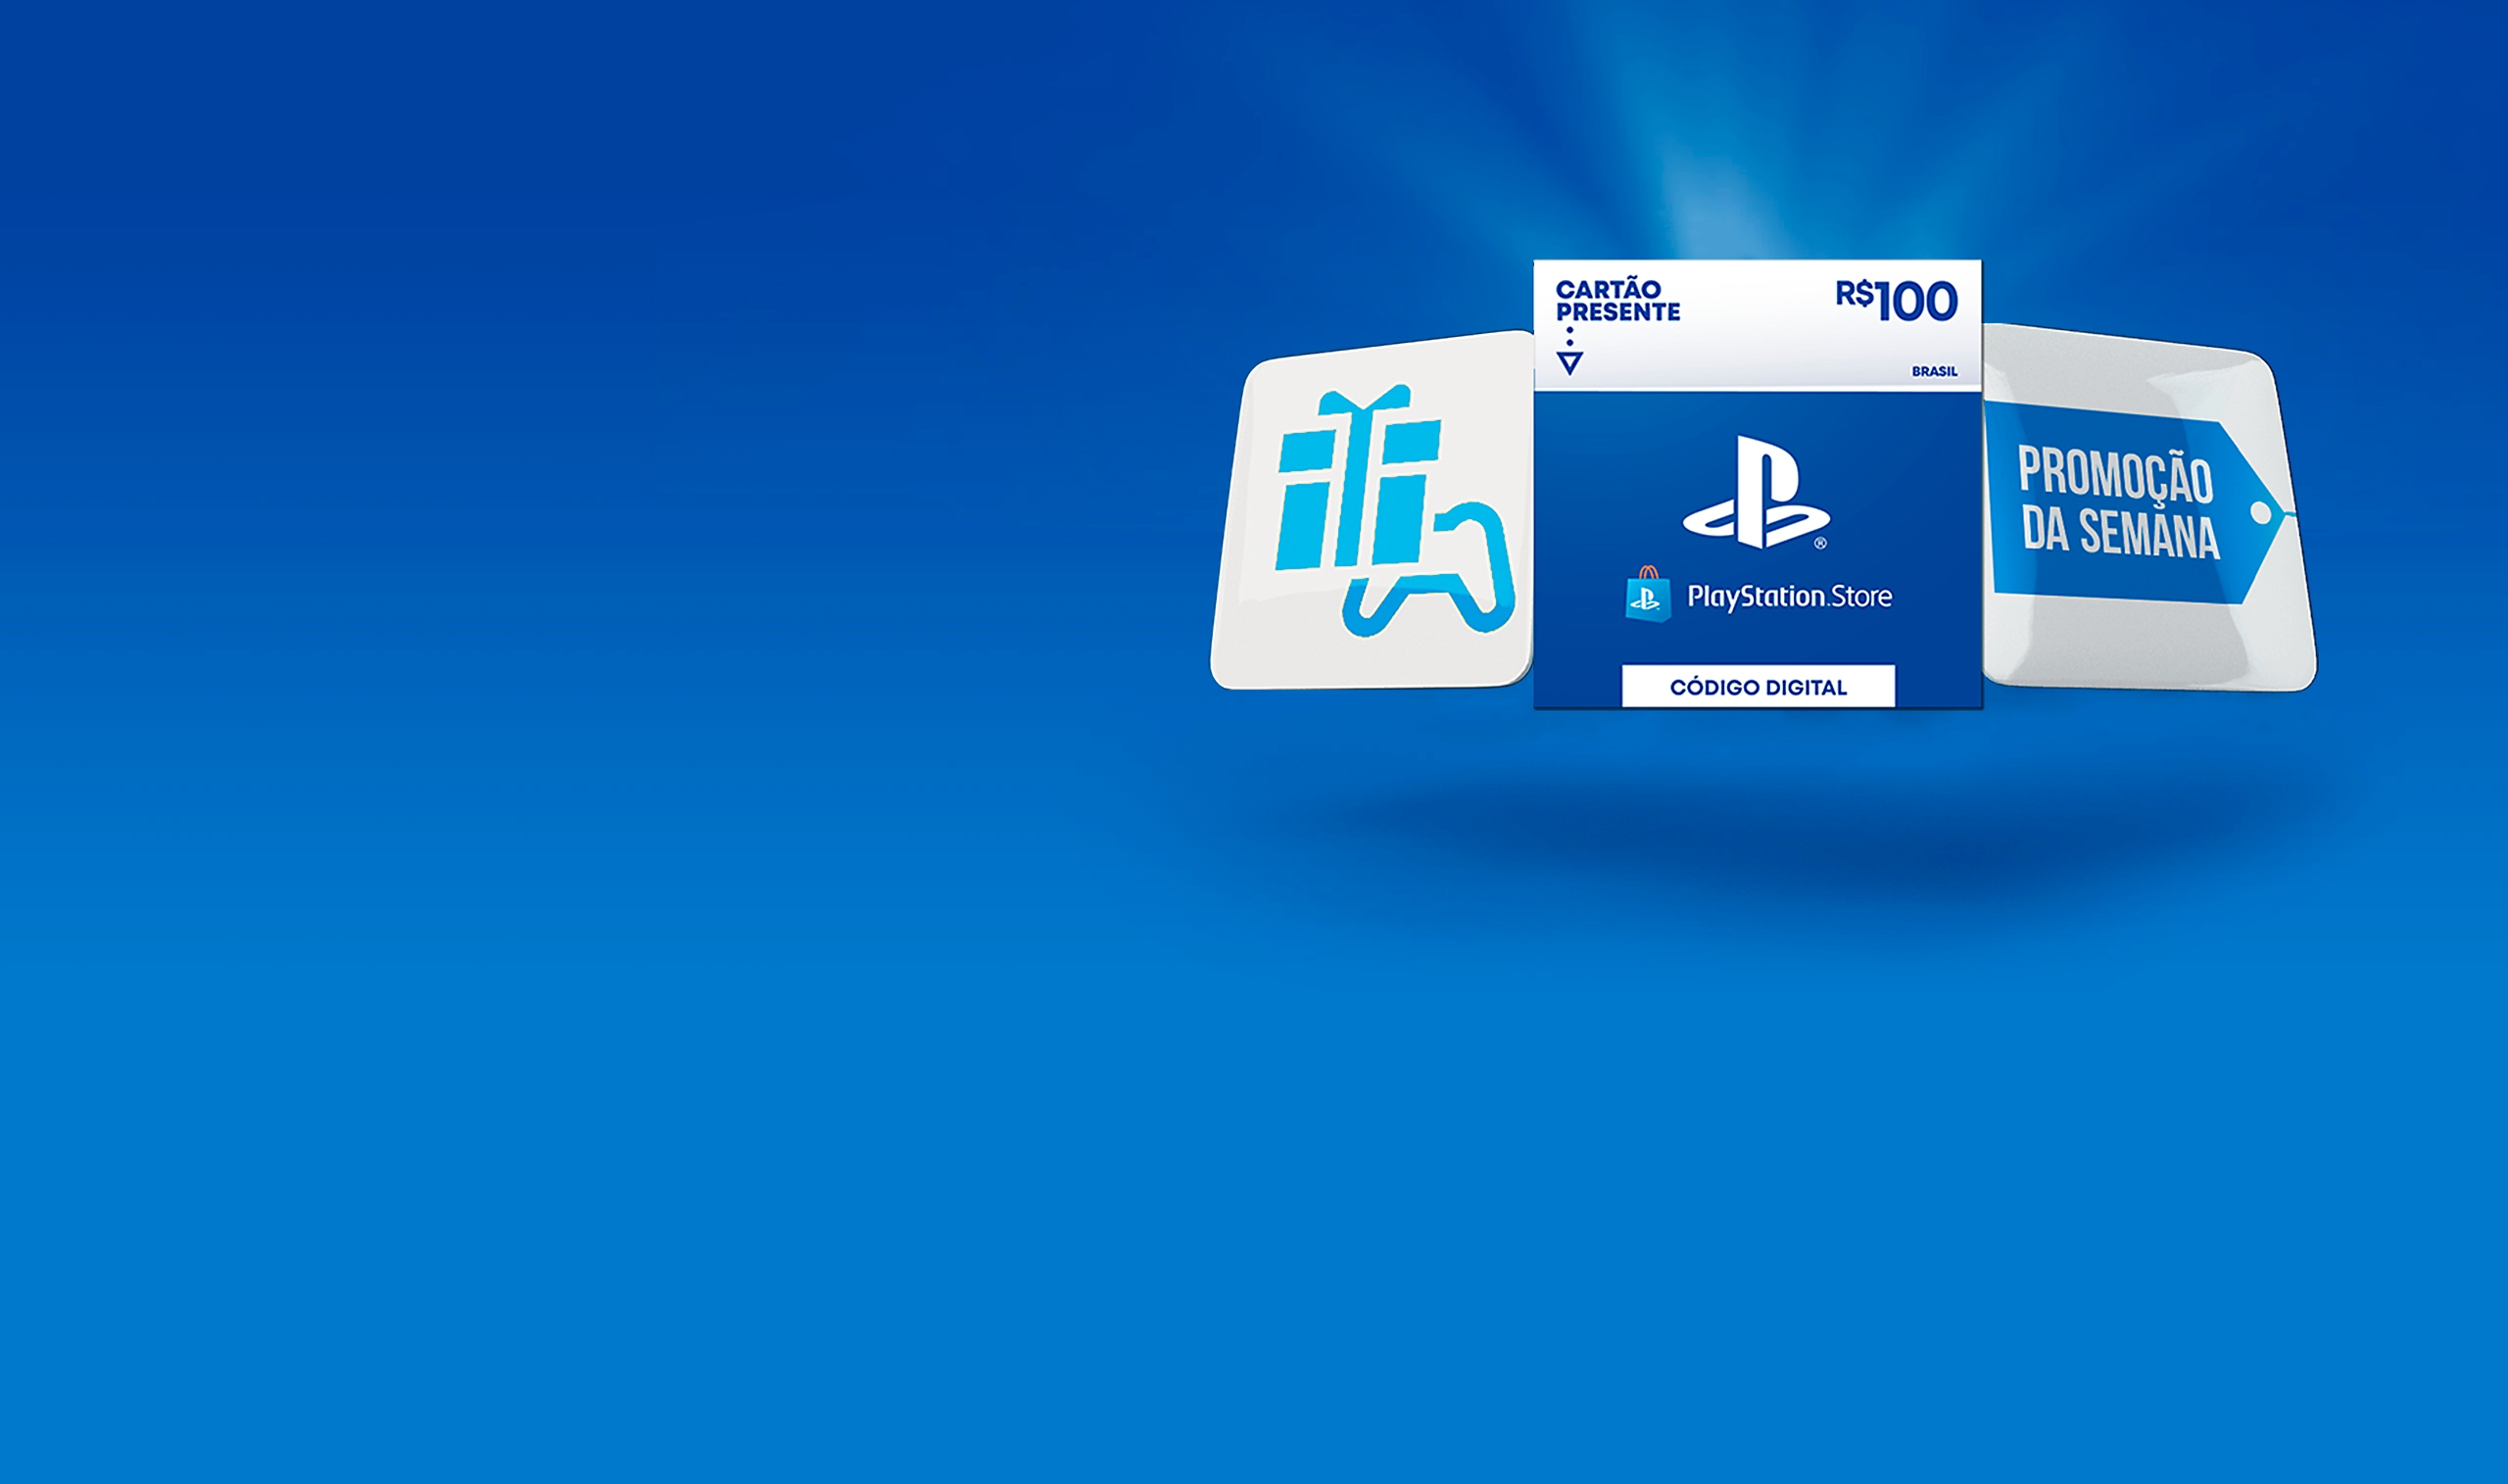 PlayStatione Store – фон раздела